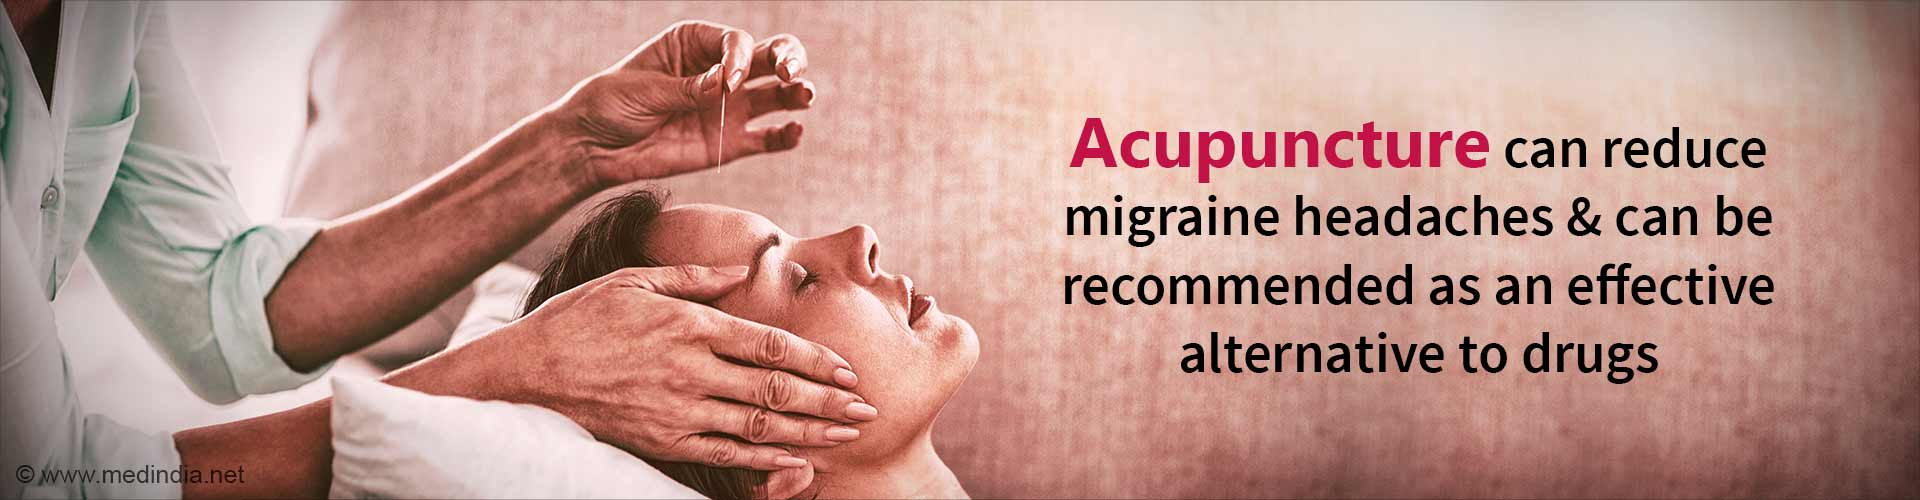 Acupuncture can Treat Migraines